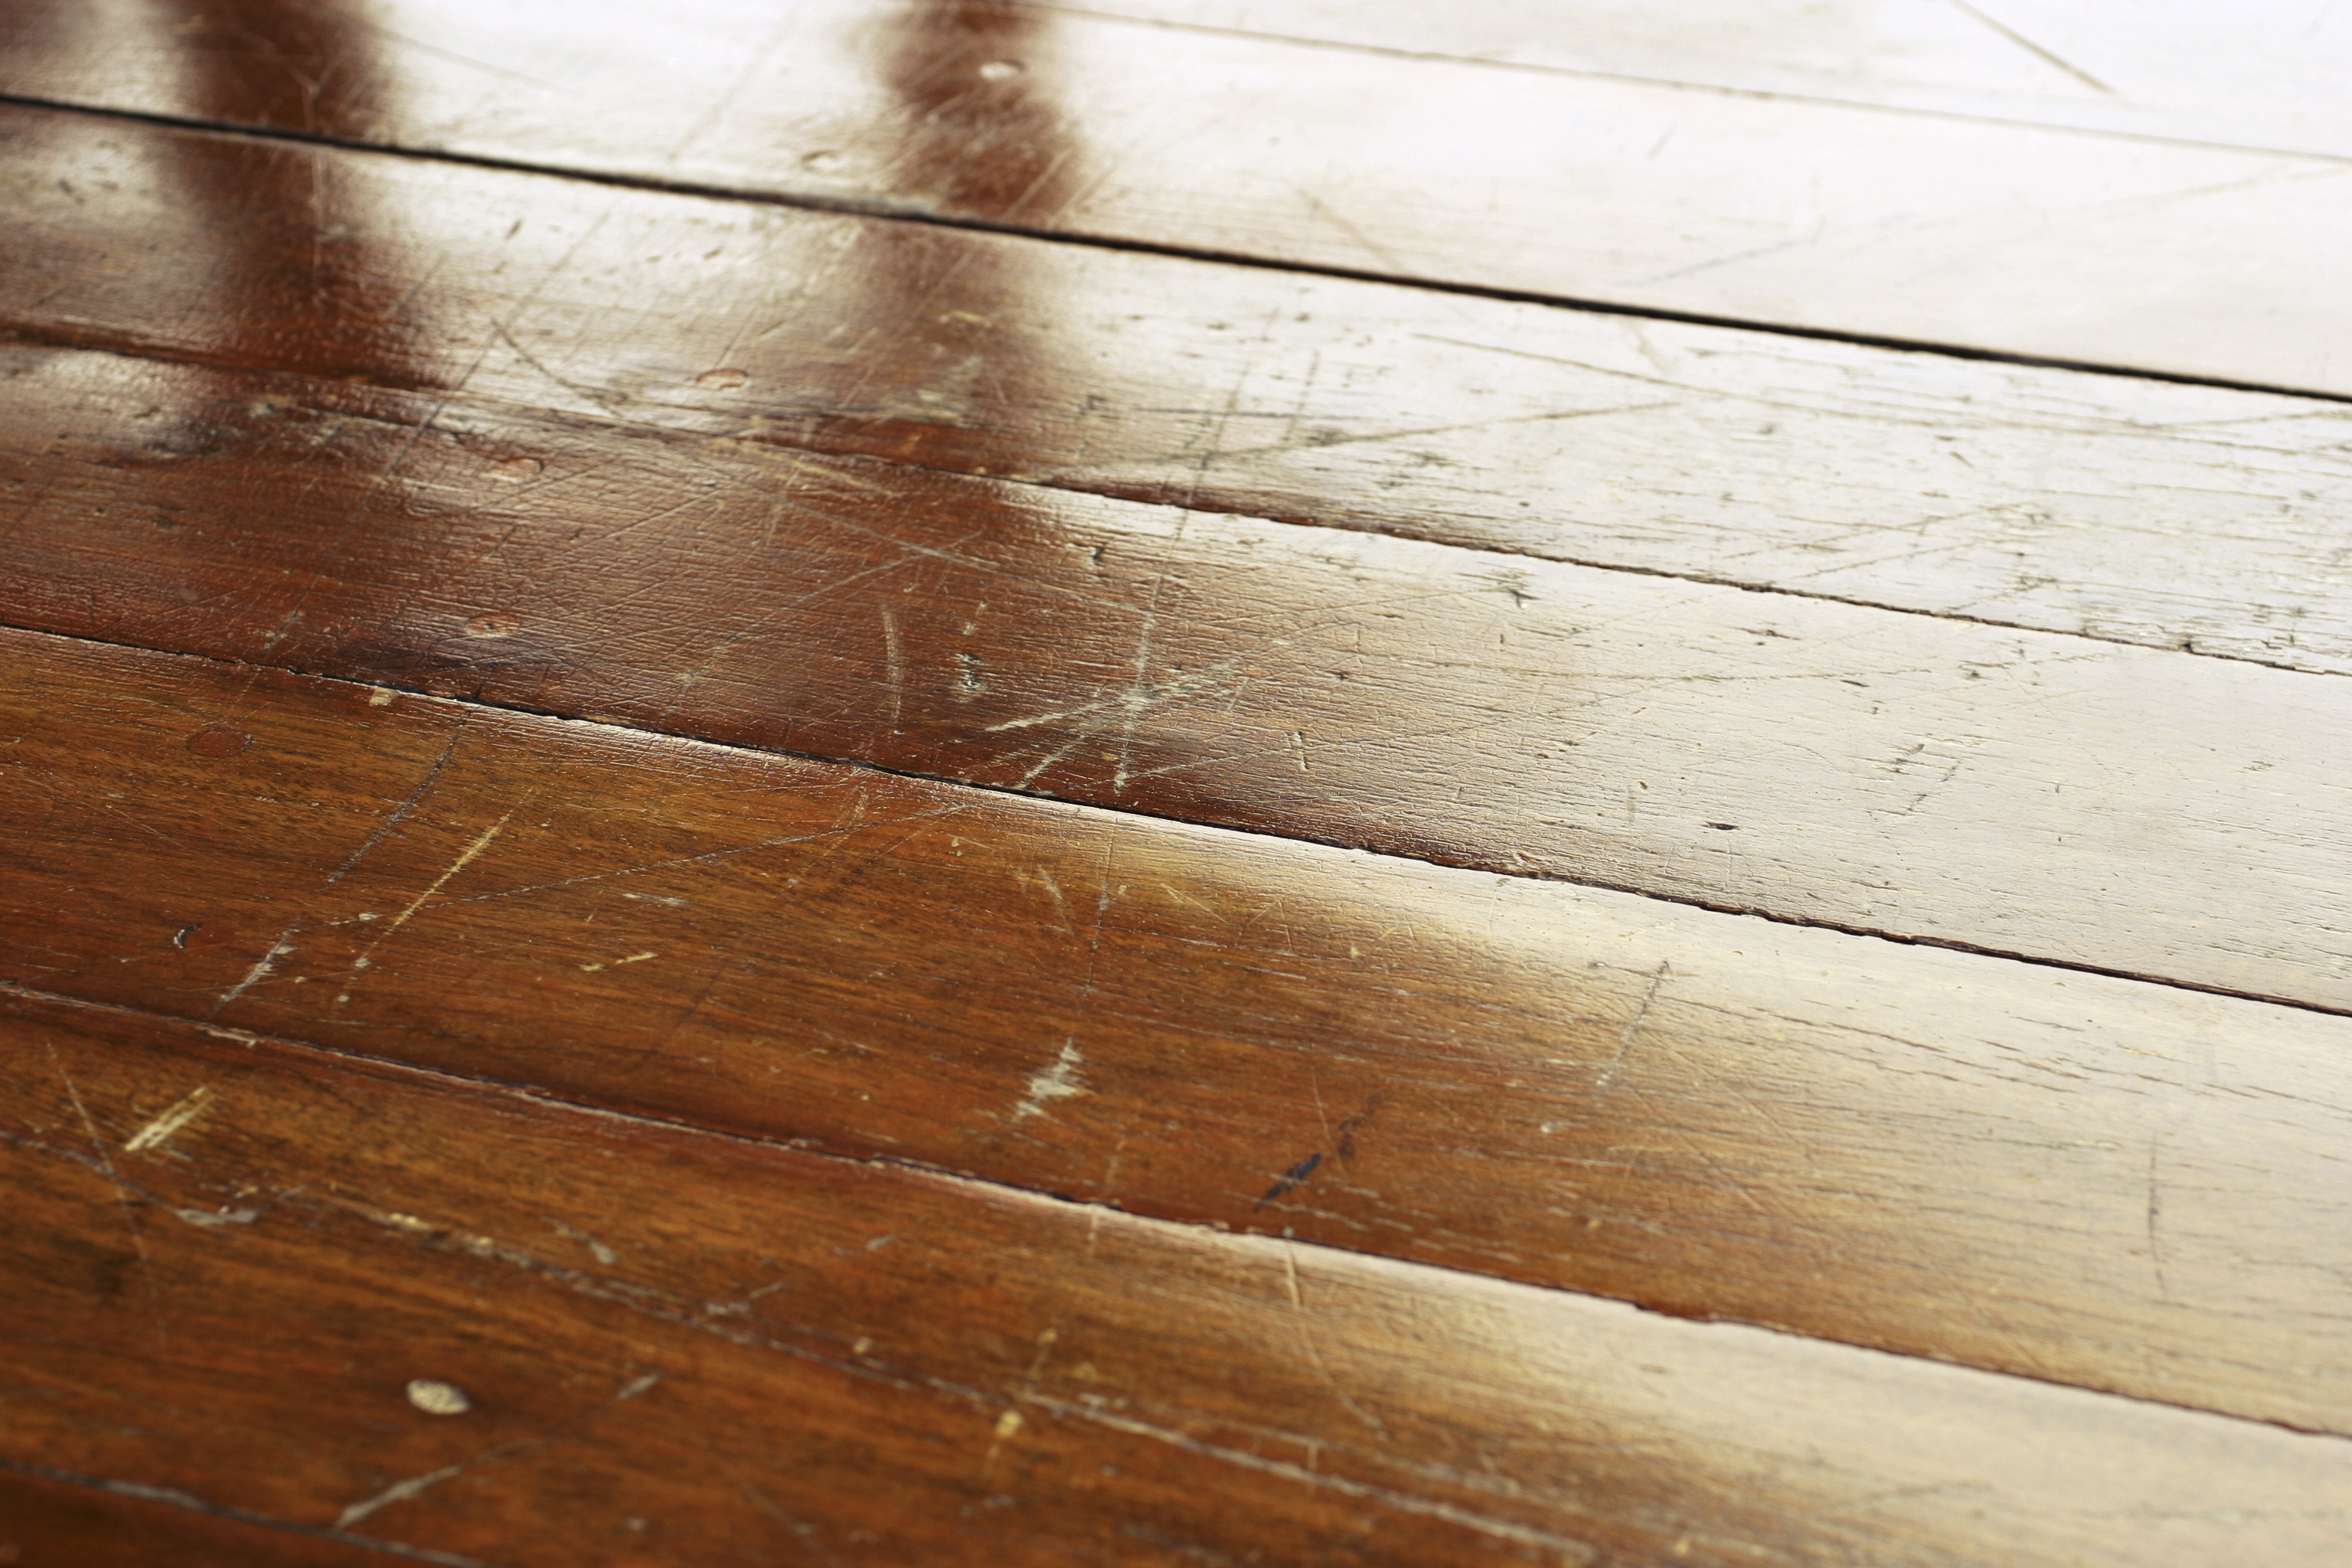 Kitchen Floor Pads 9 Things Youre Doing To Ruin Your Hardwood Floors Without Even